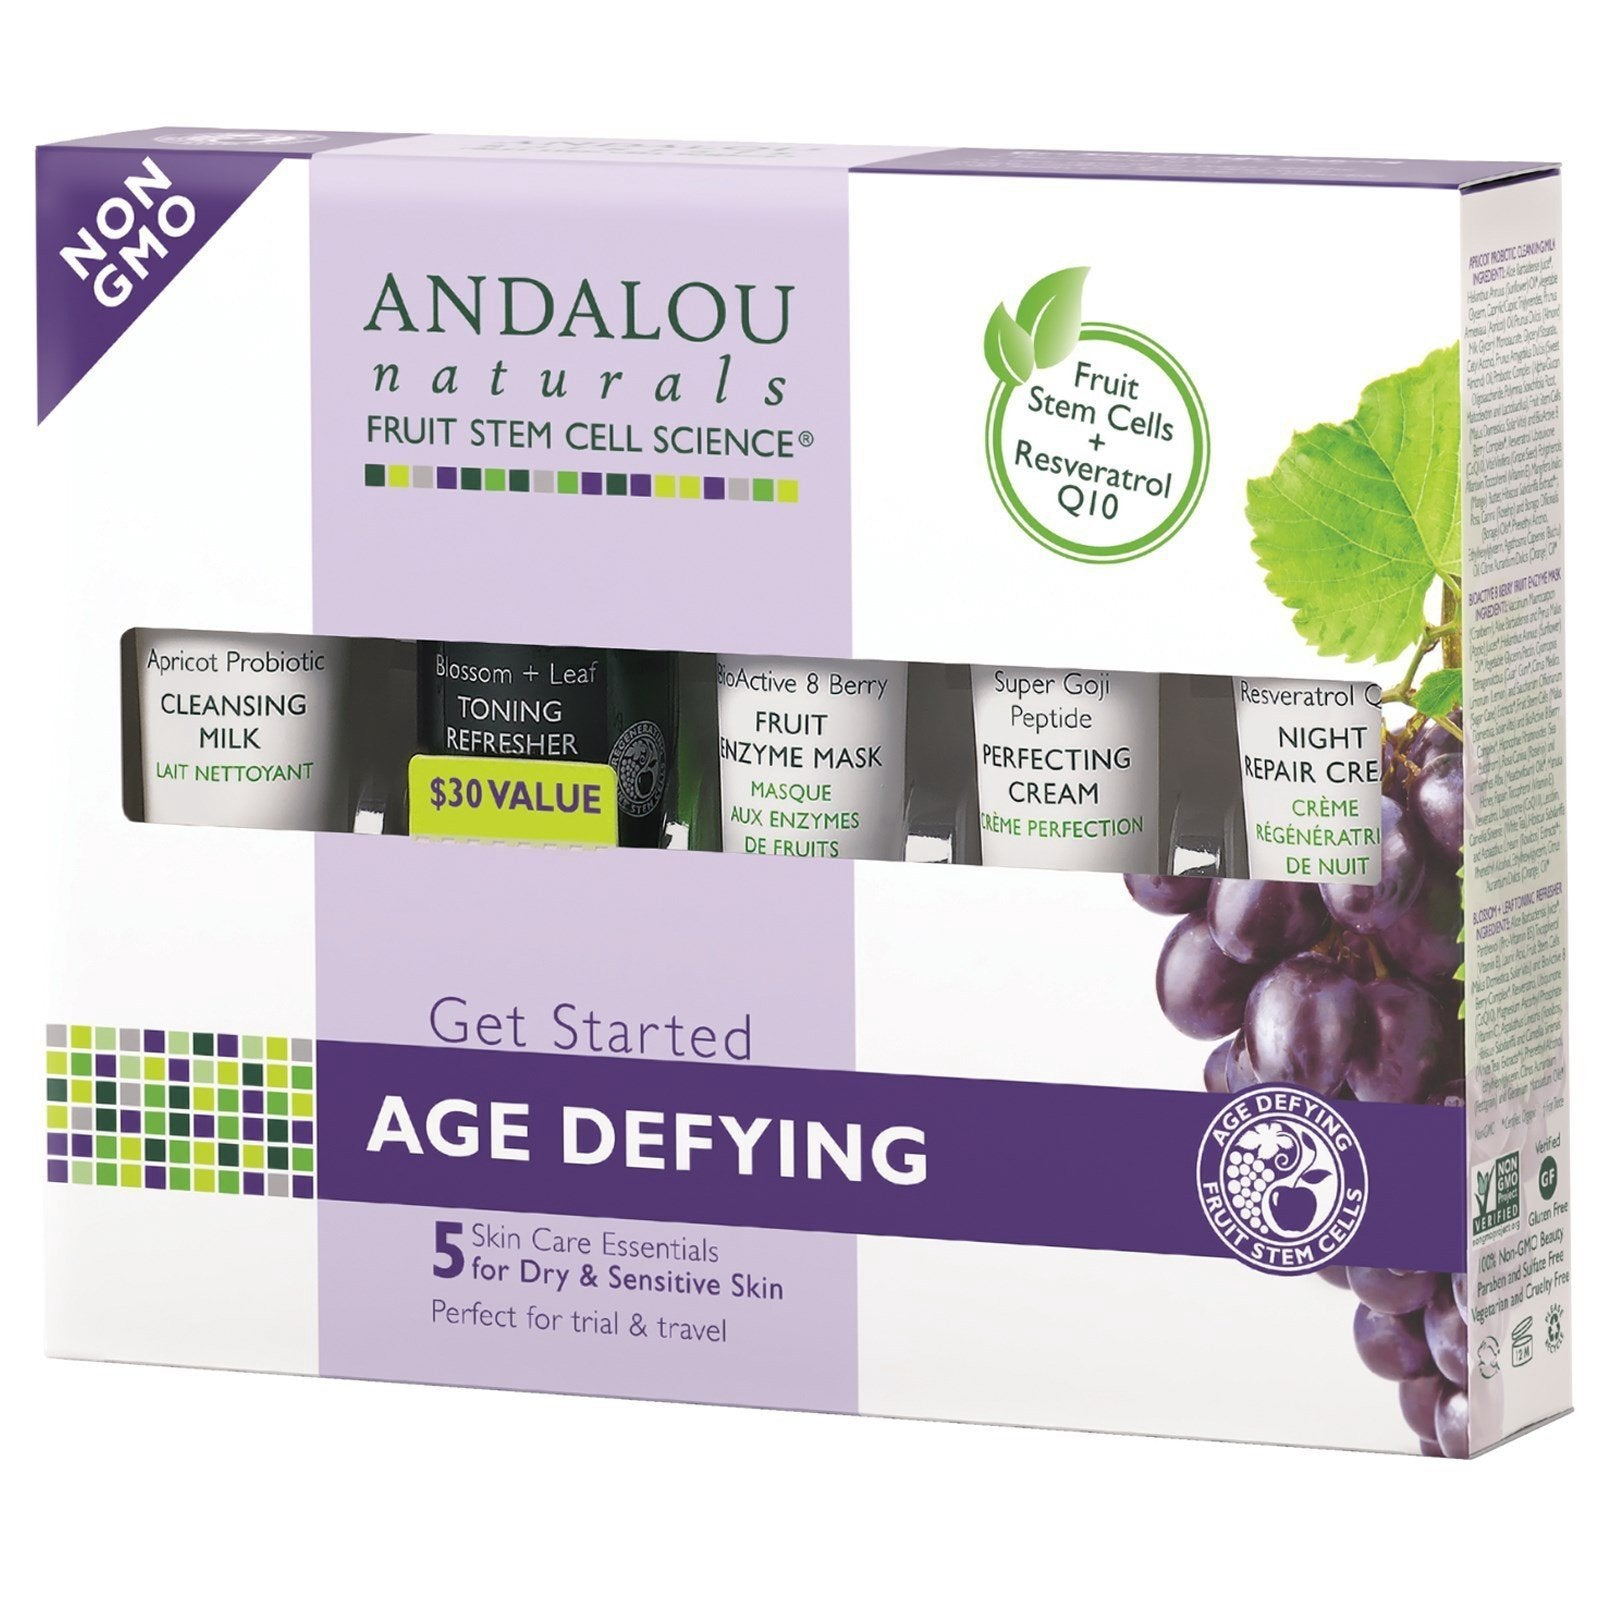 Age Defying Trial & Travel Pack 5 mini's by ANDALOU NATURALS - Tassie Supps - Personal Hygiene